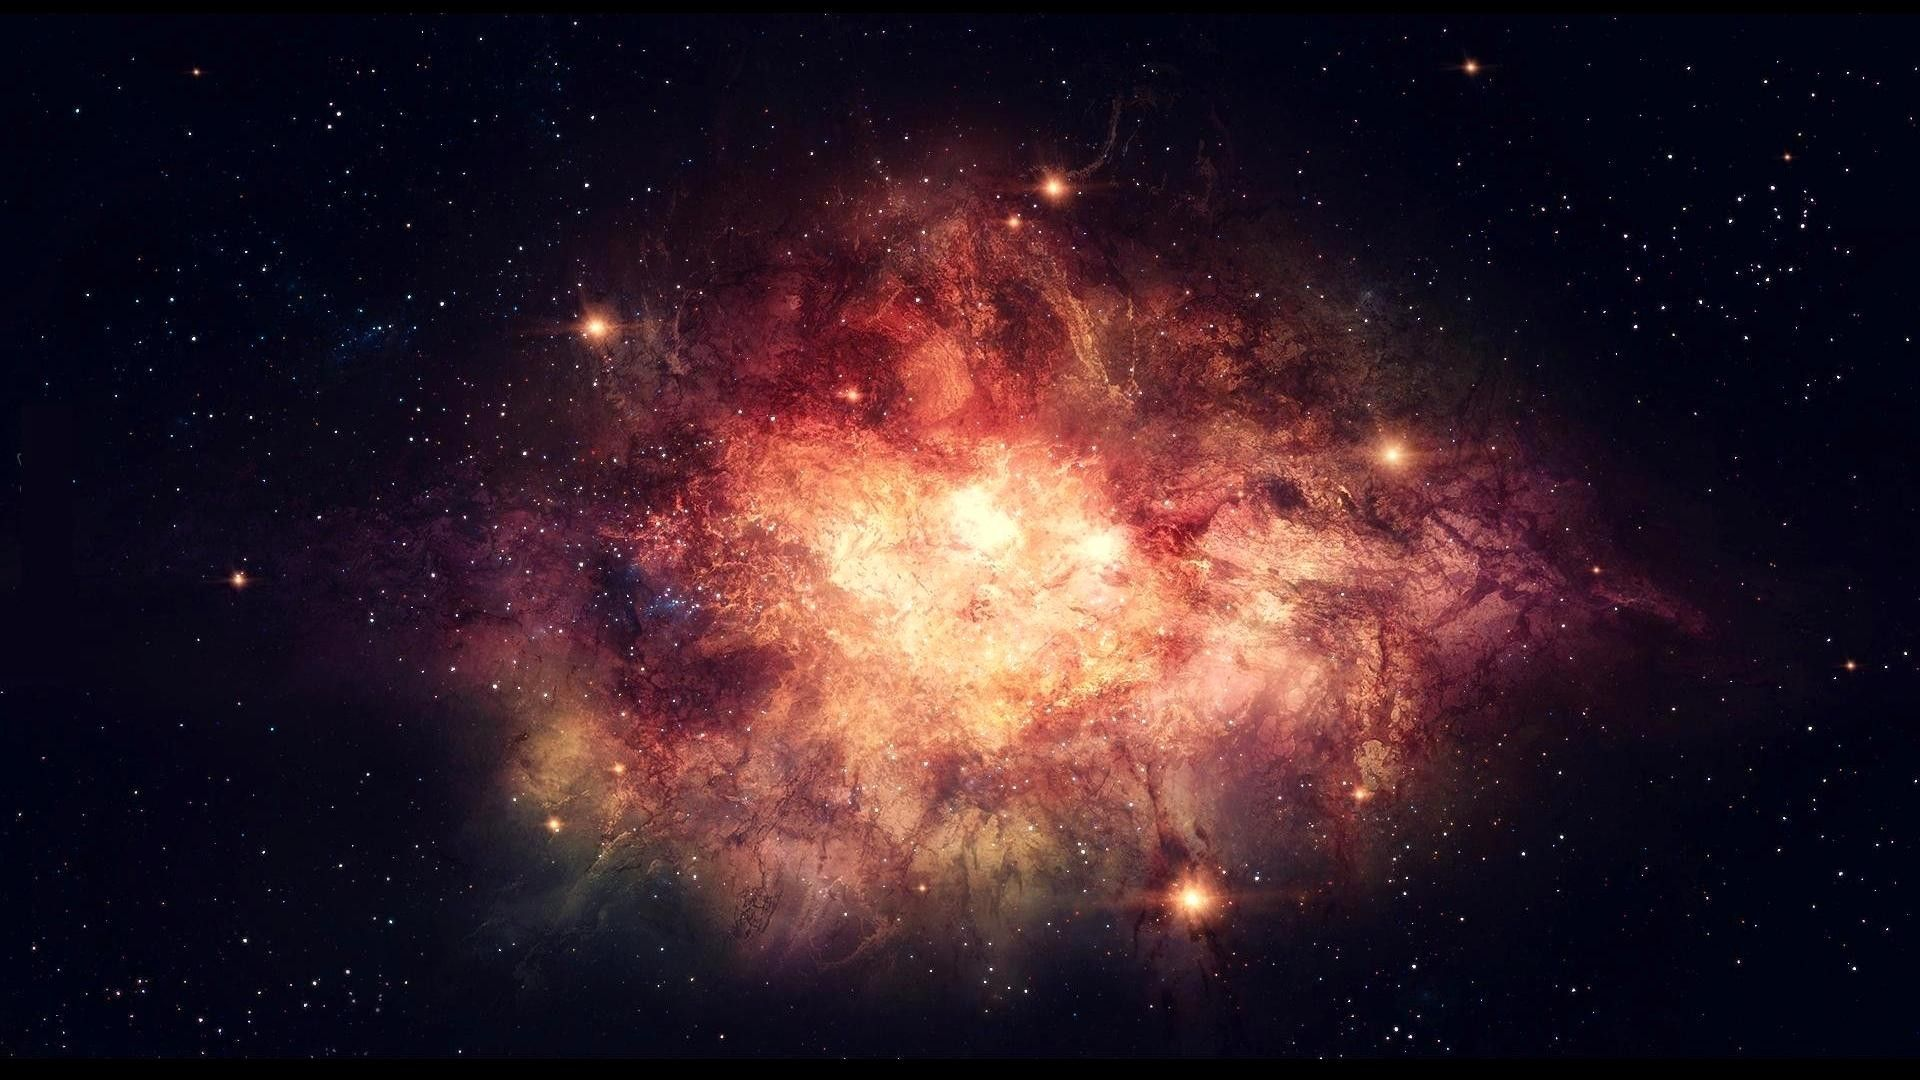 Big bang abstract dark explosions nebulae wallpaper for Sfondi galassie hd